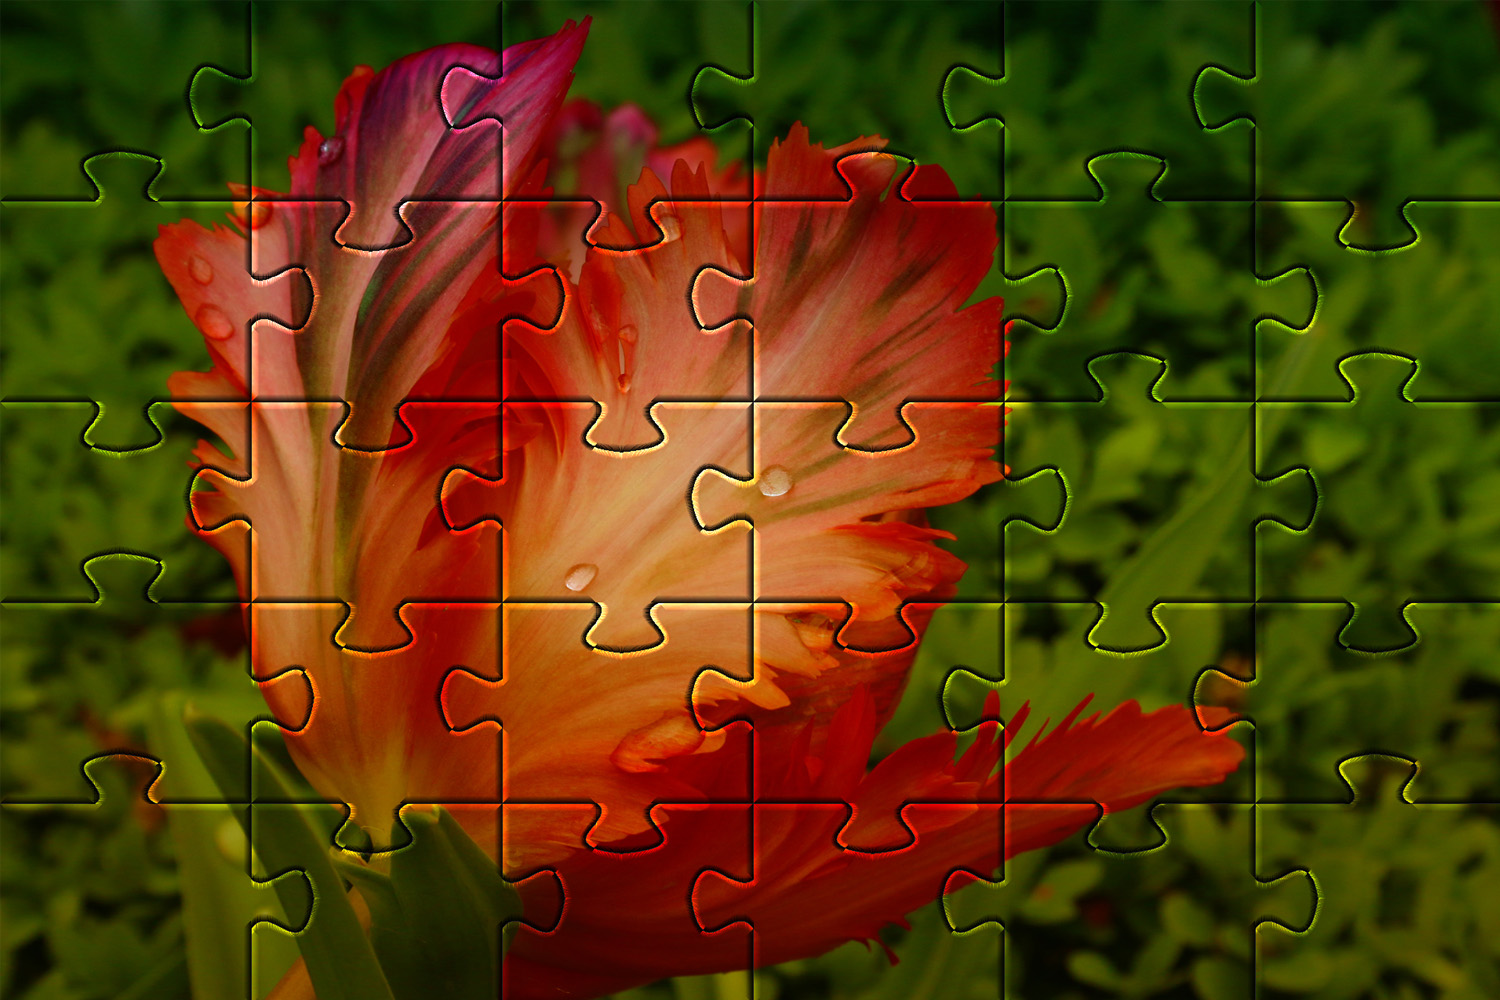 Example of GIMPs Jigsaw Pattern